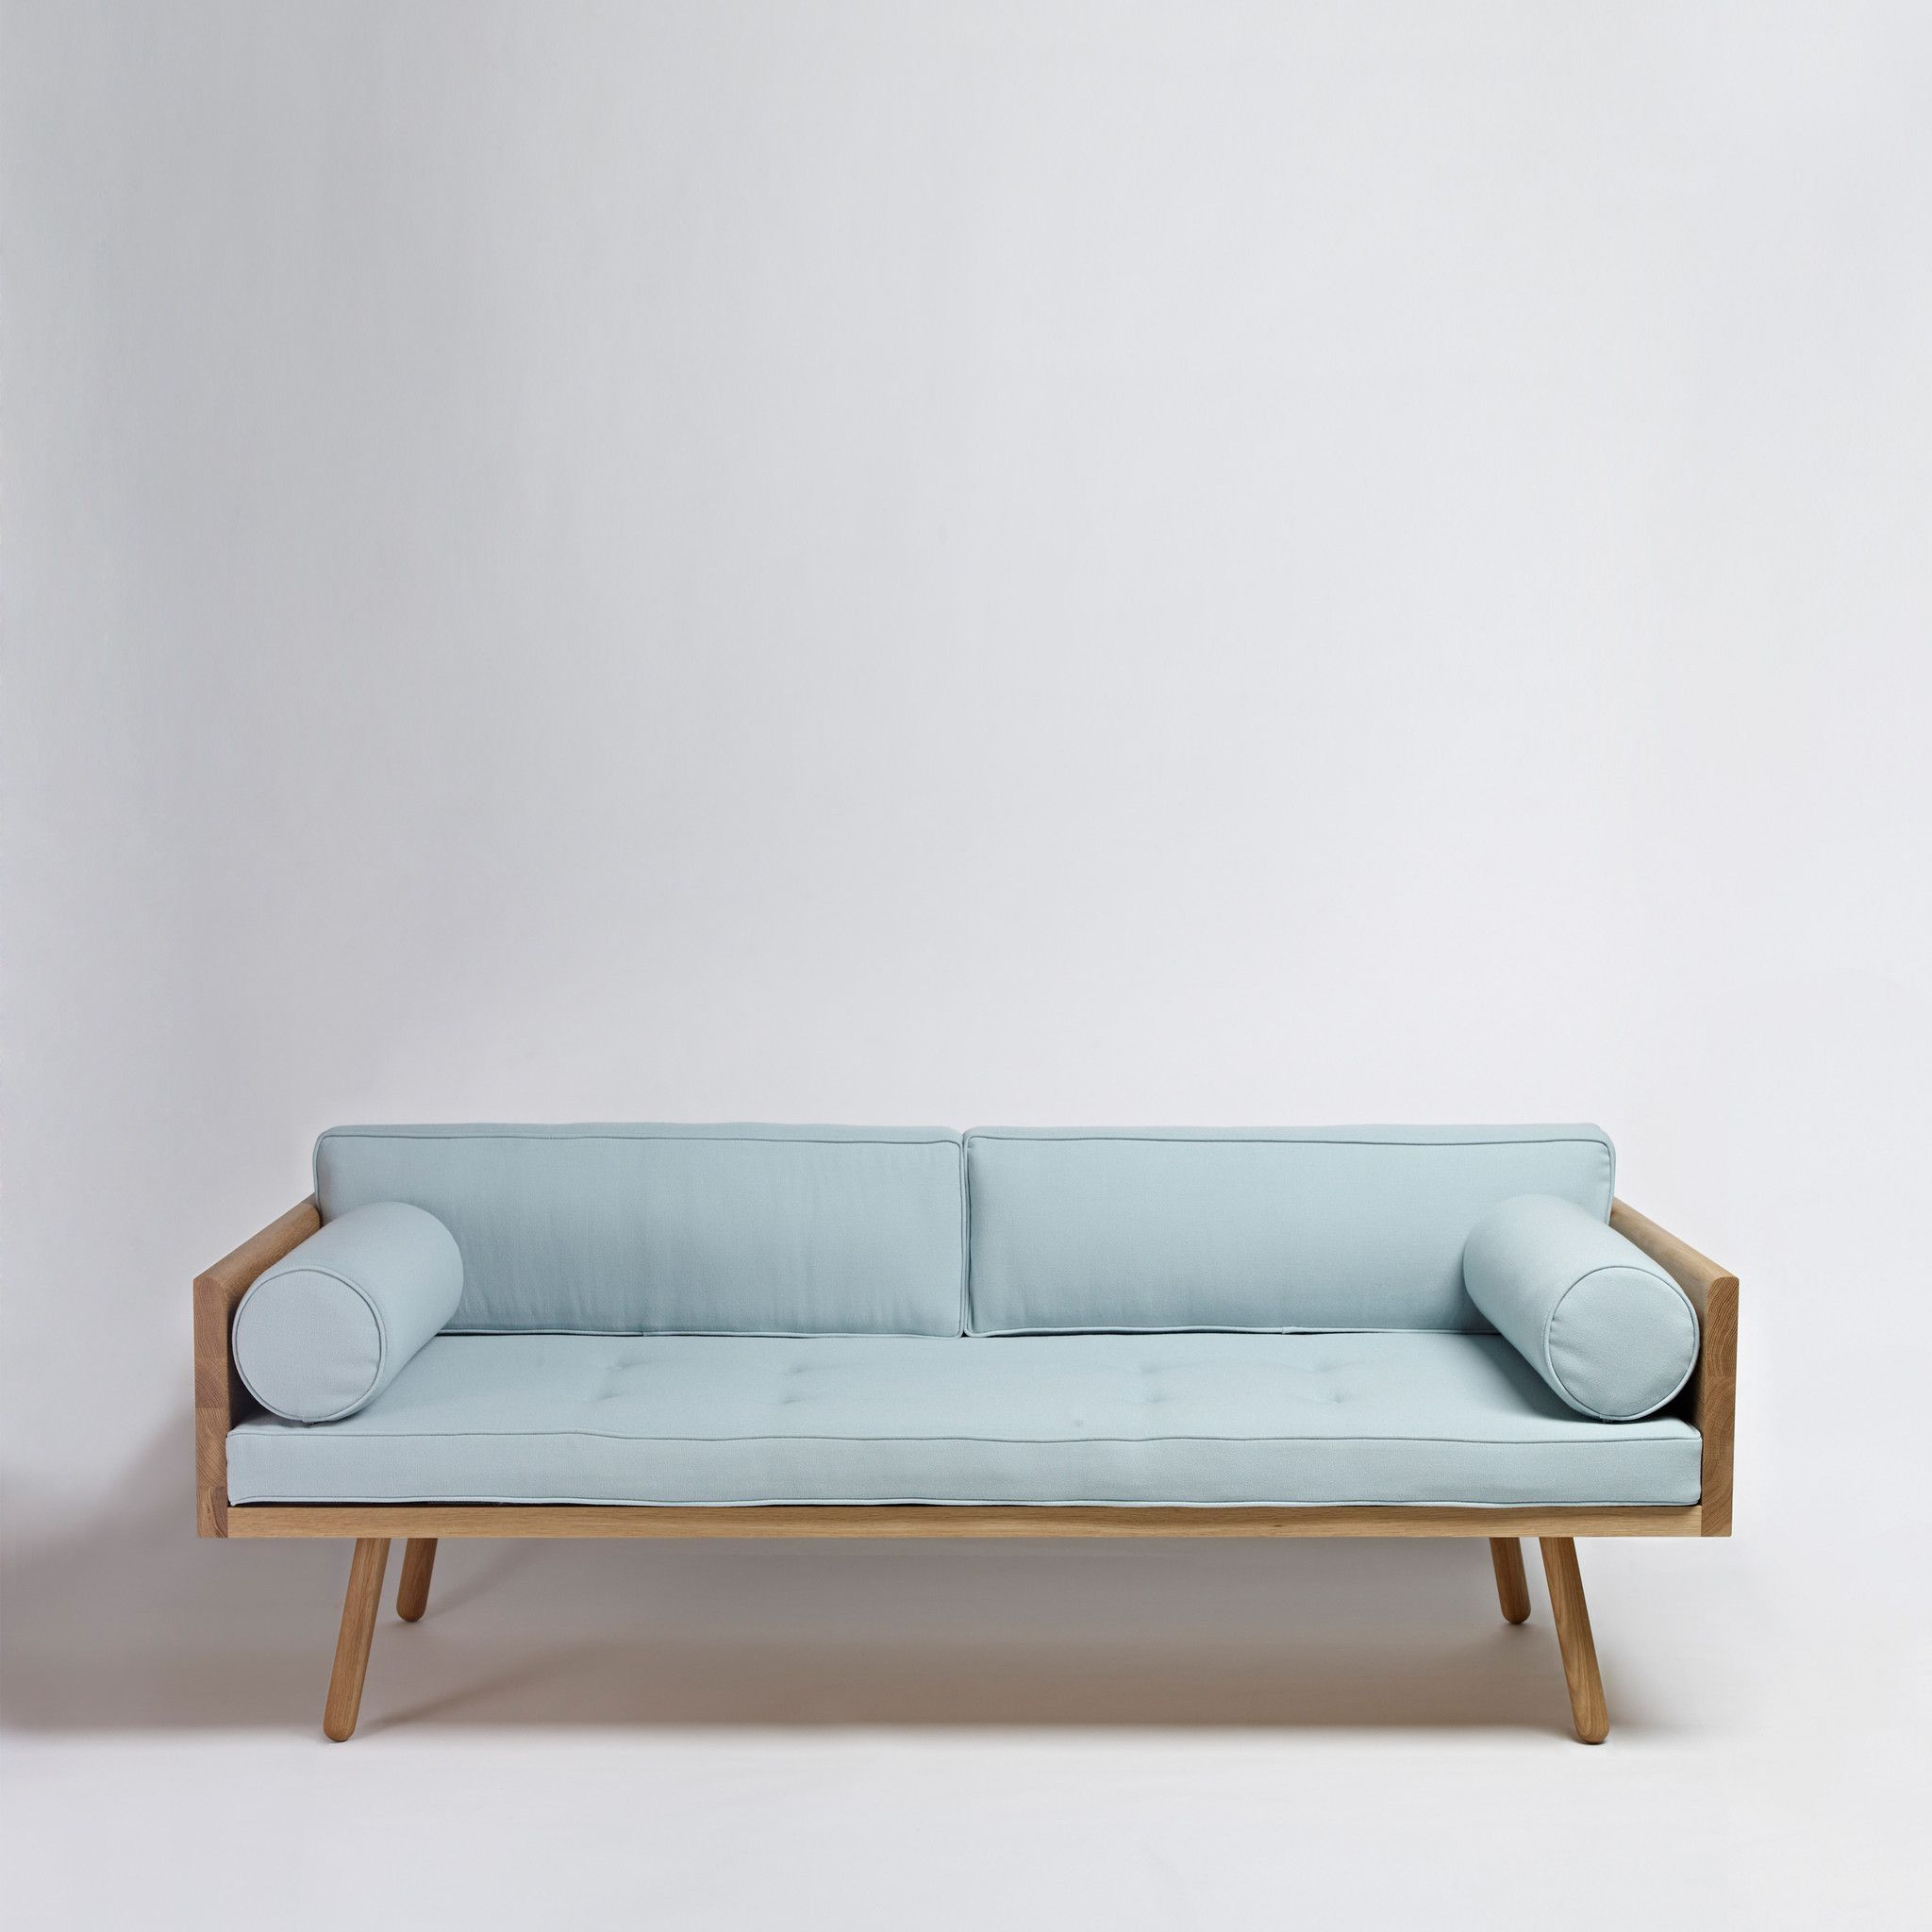 minimal sofa design stain resistant another country one in 2019 seating sofas as of the uk s most loved contemporary craft companies creates armchairs day beds with a distinctive character and charm